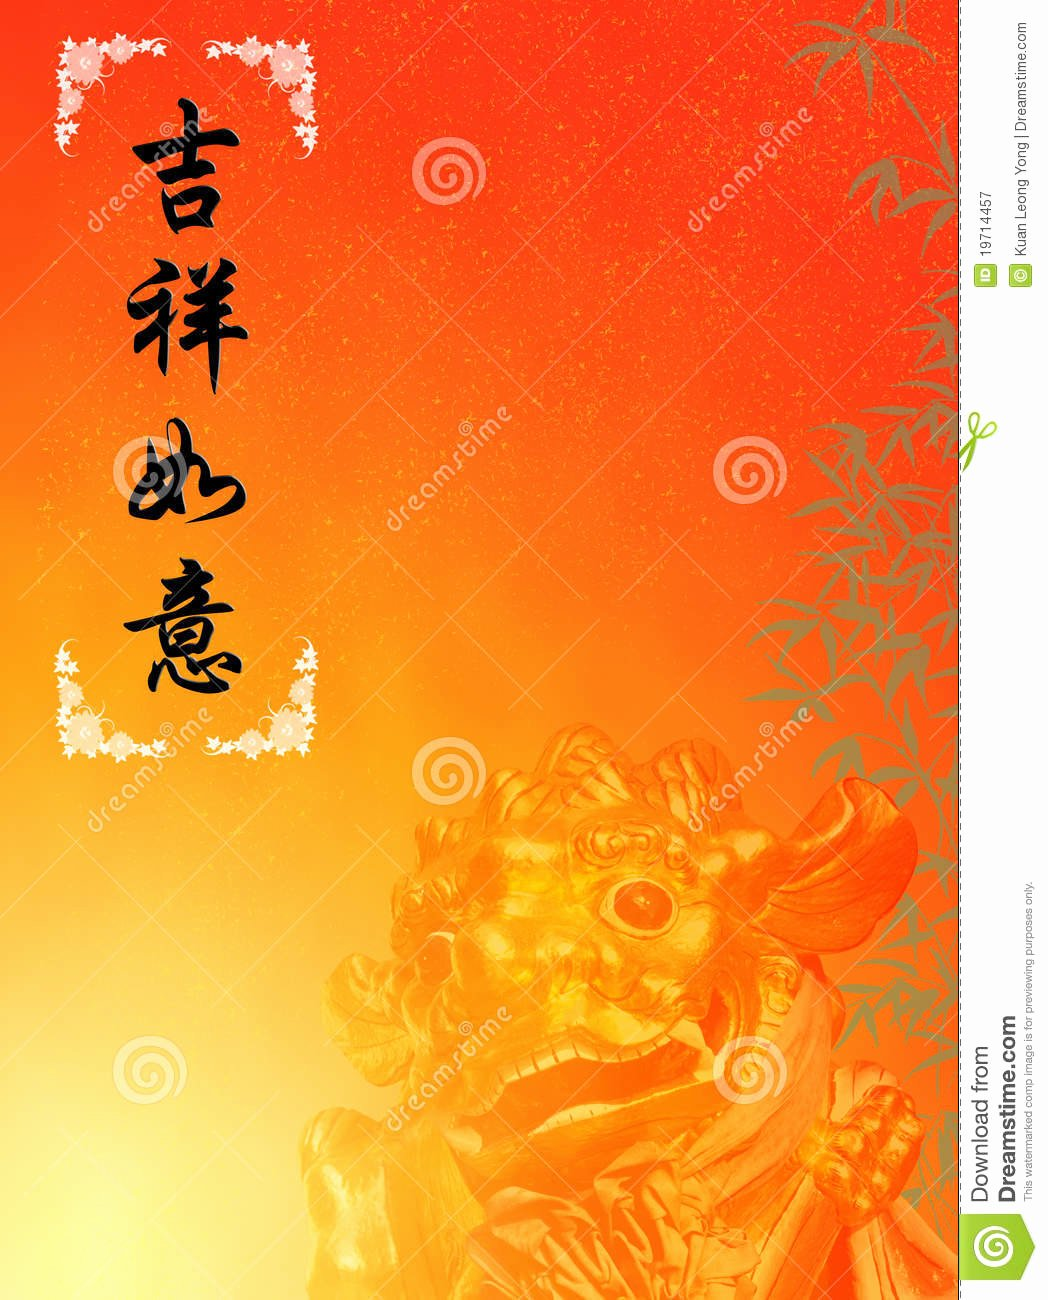 New Year Card Template Unique Chinese New Year Card Template Stock Illustration Image